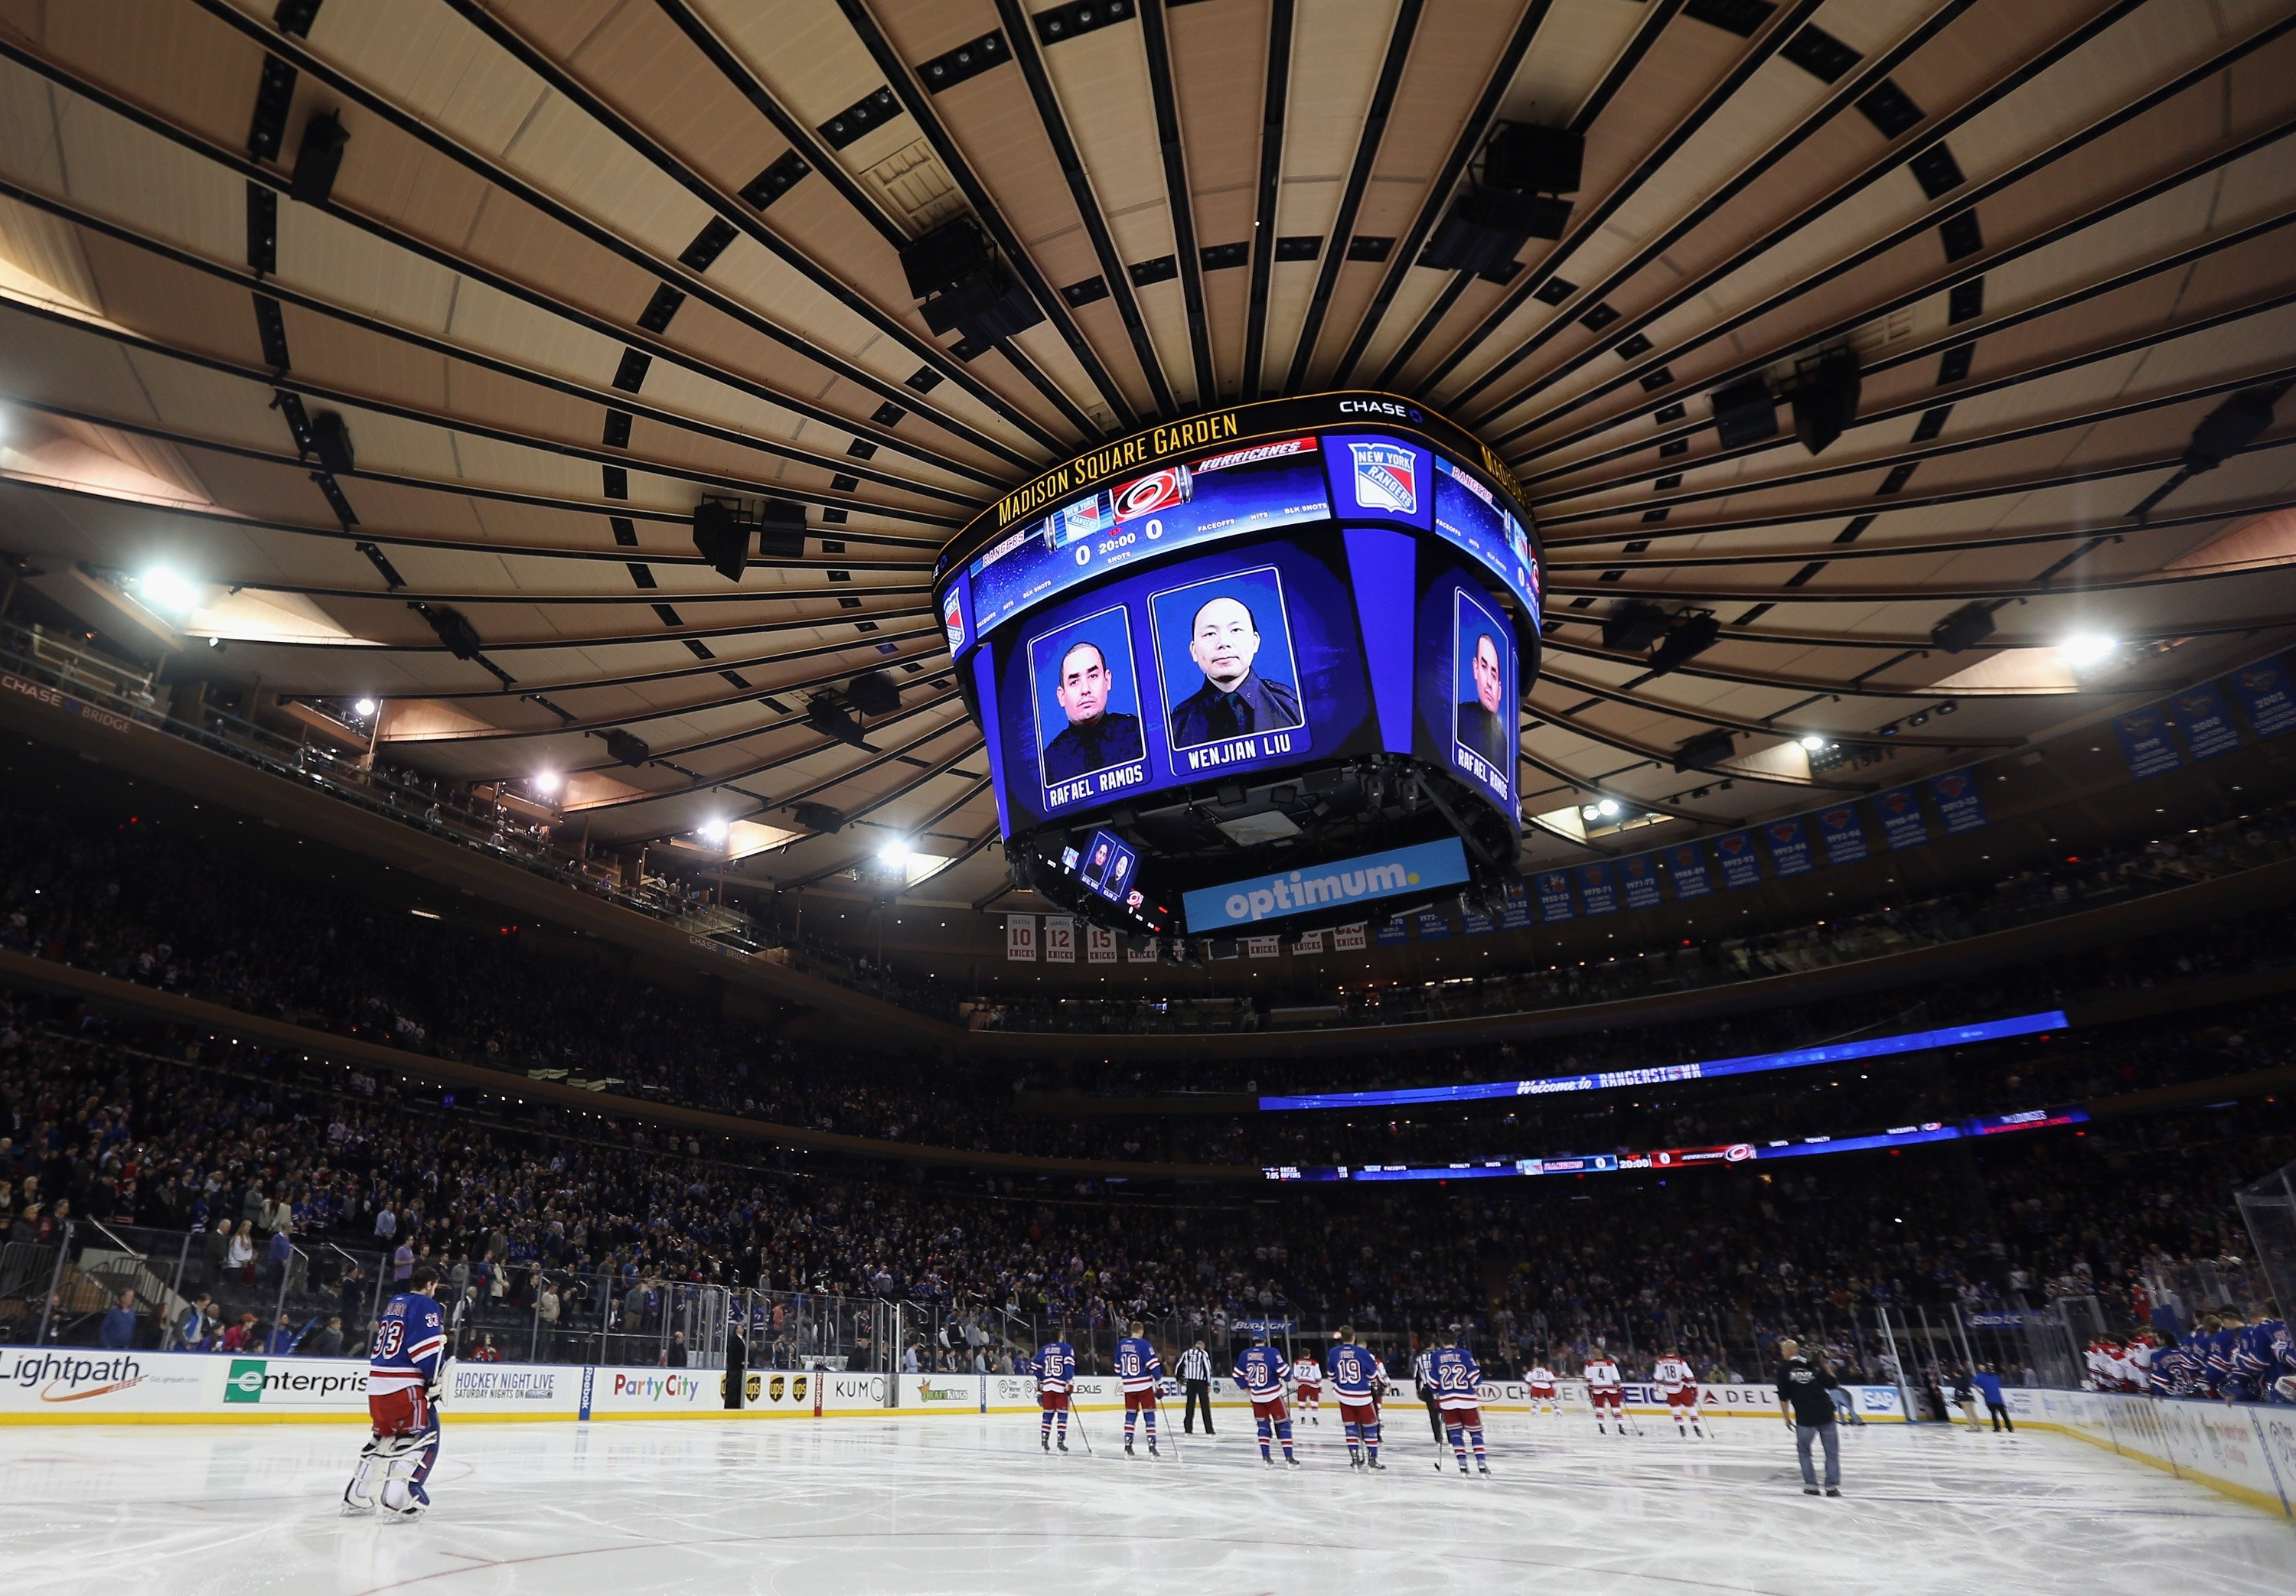 new york rangers wallpapers free download | pixelstalk